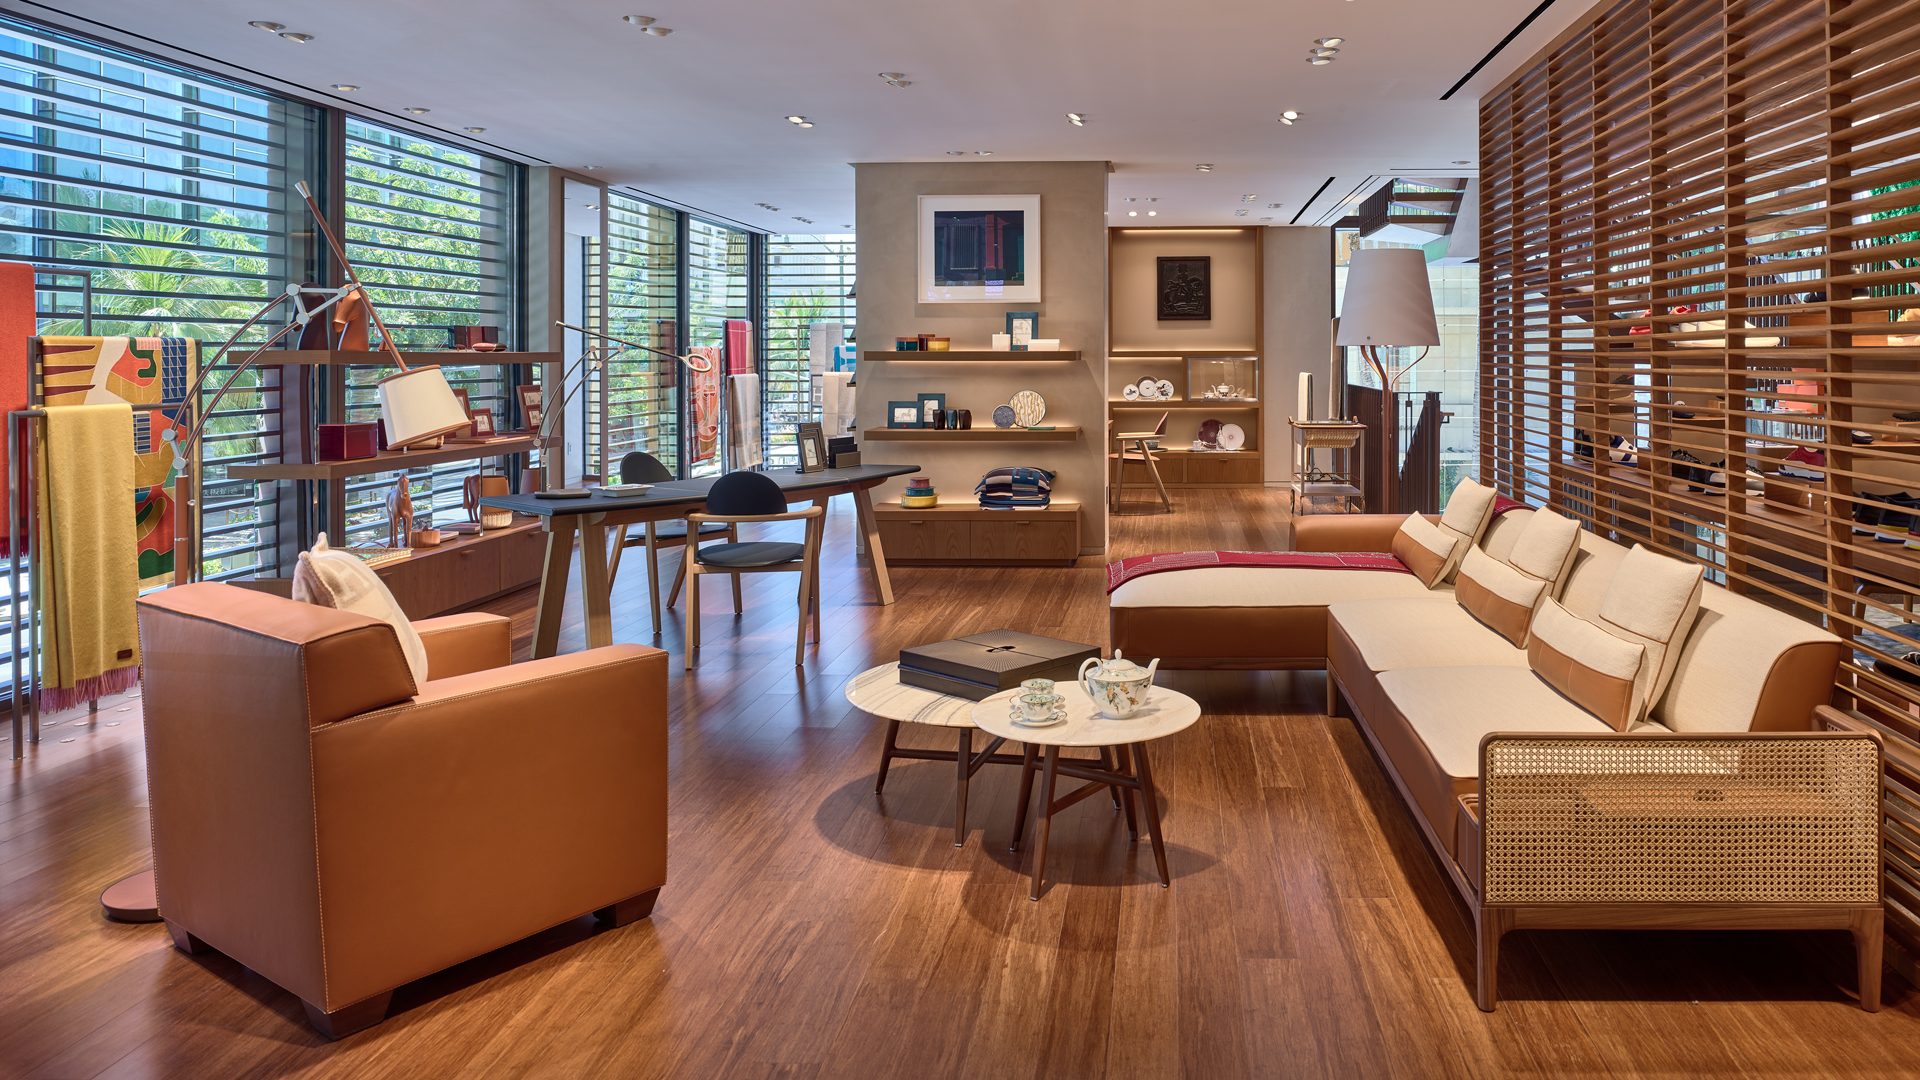 Hermès' newly expanded store at the Royal Hawaiian Center in Waikiki was designed to bring the outdoors into the store.